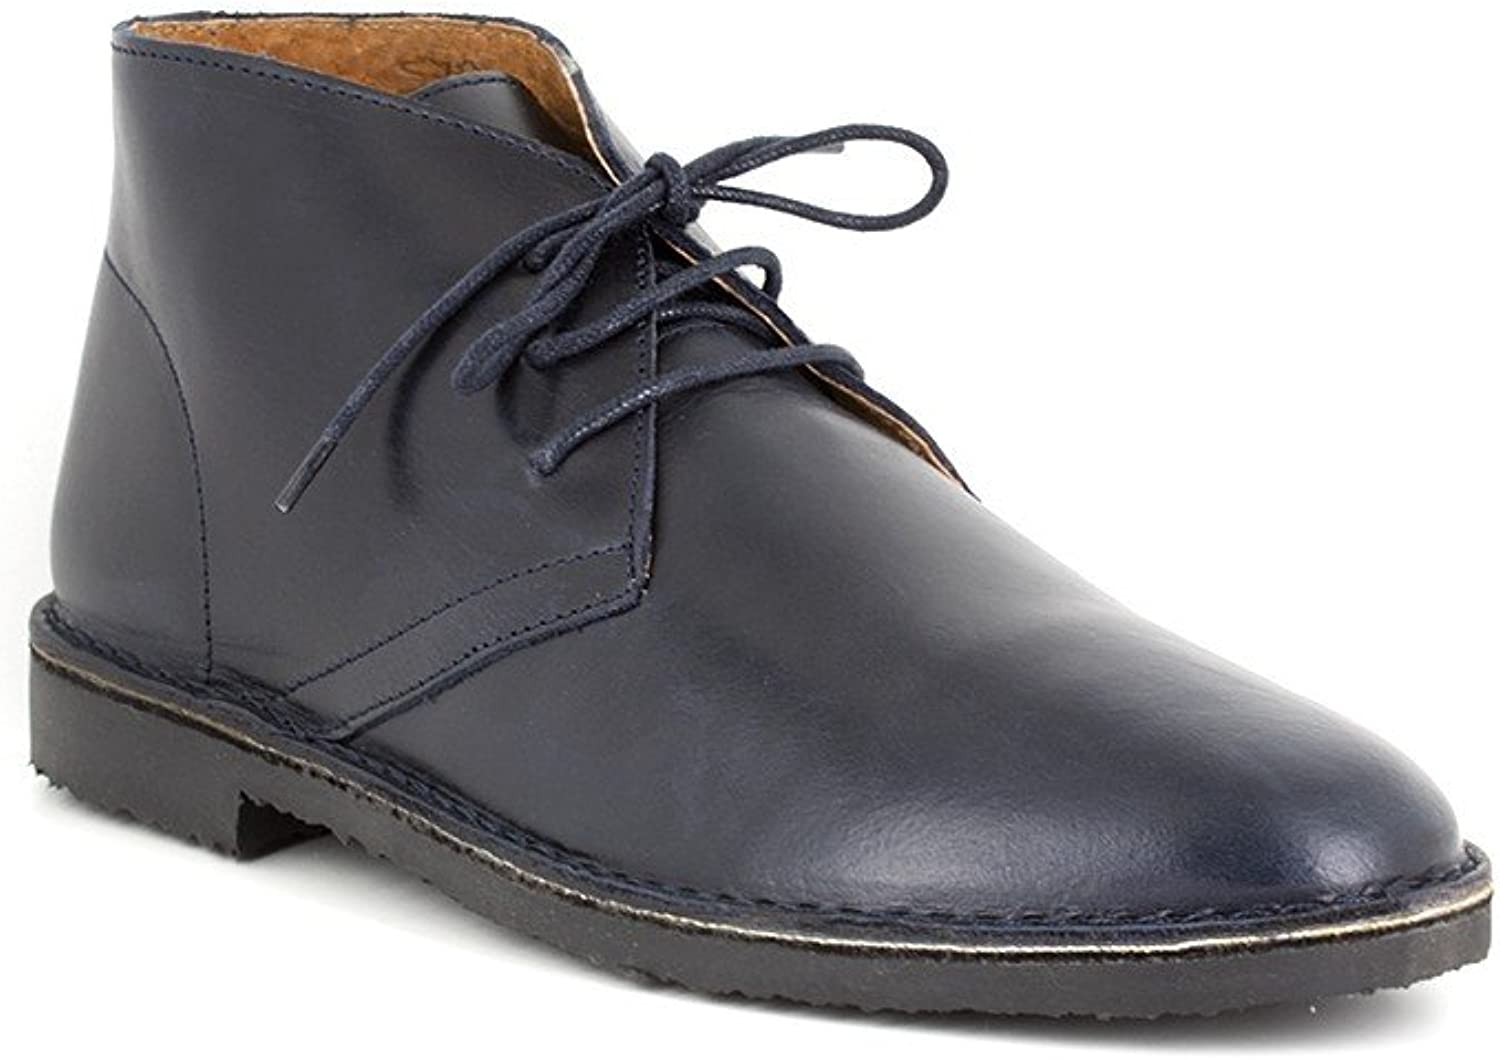 Peter Blade Low Boots Navy bluee Leather PUNDON